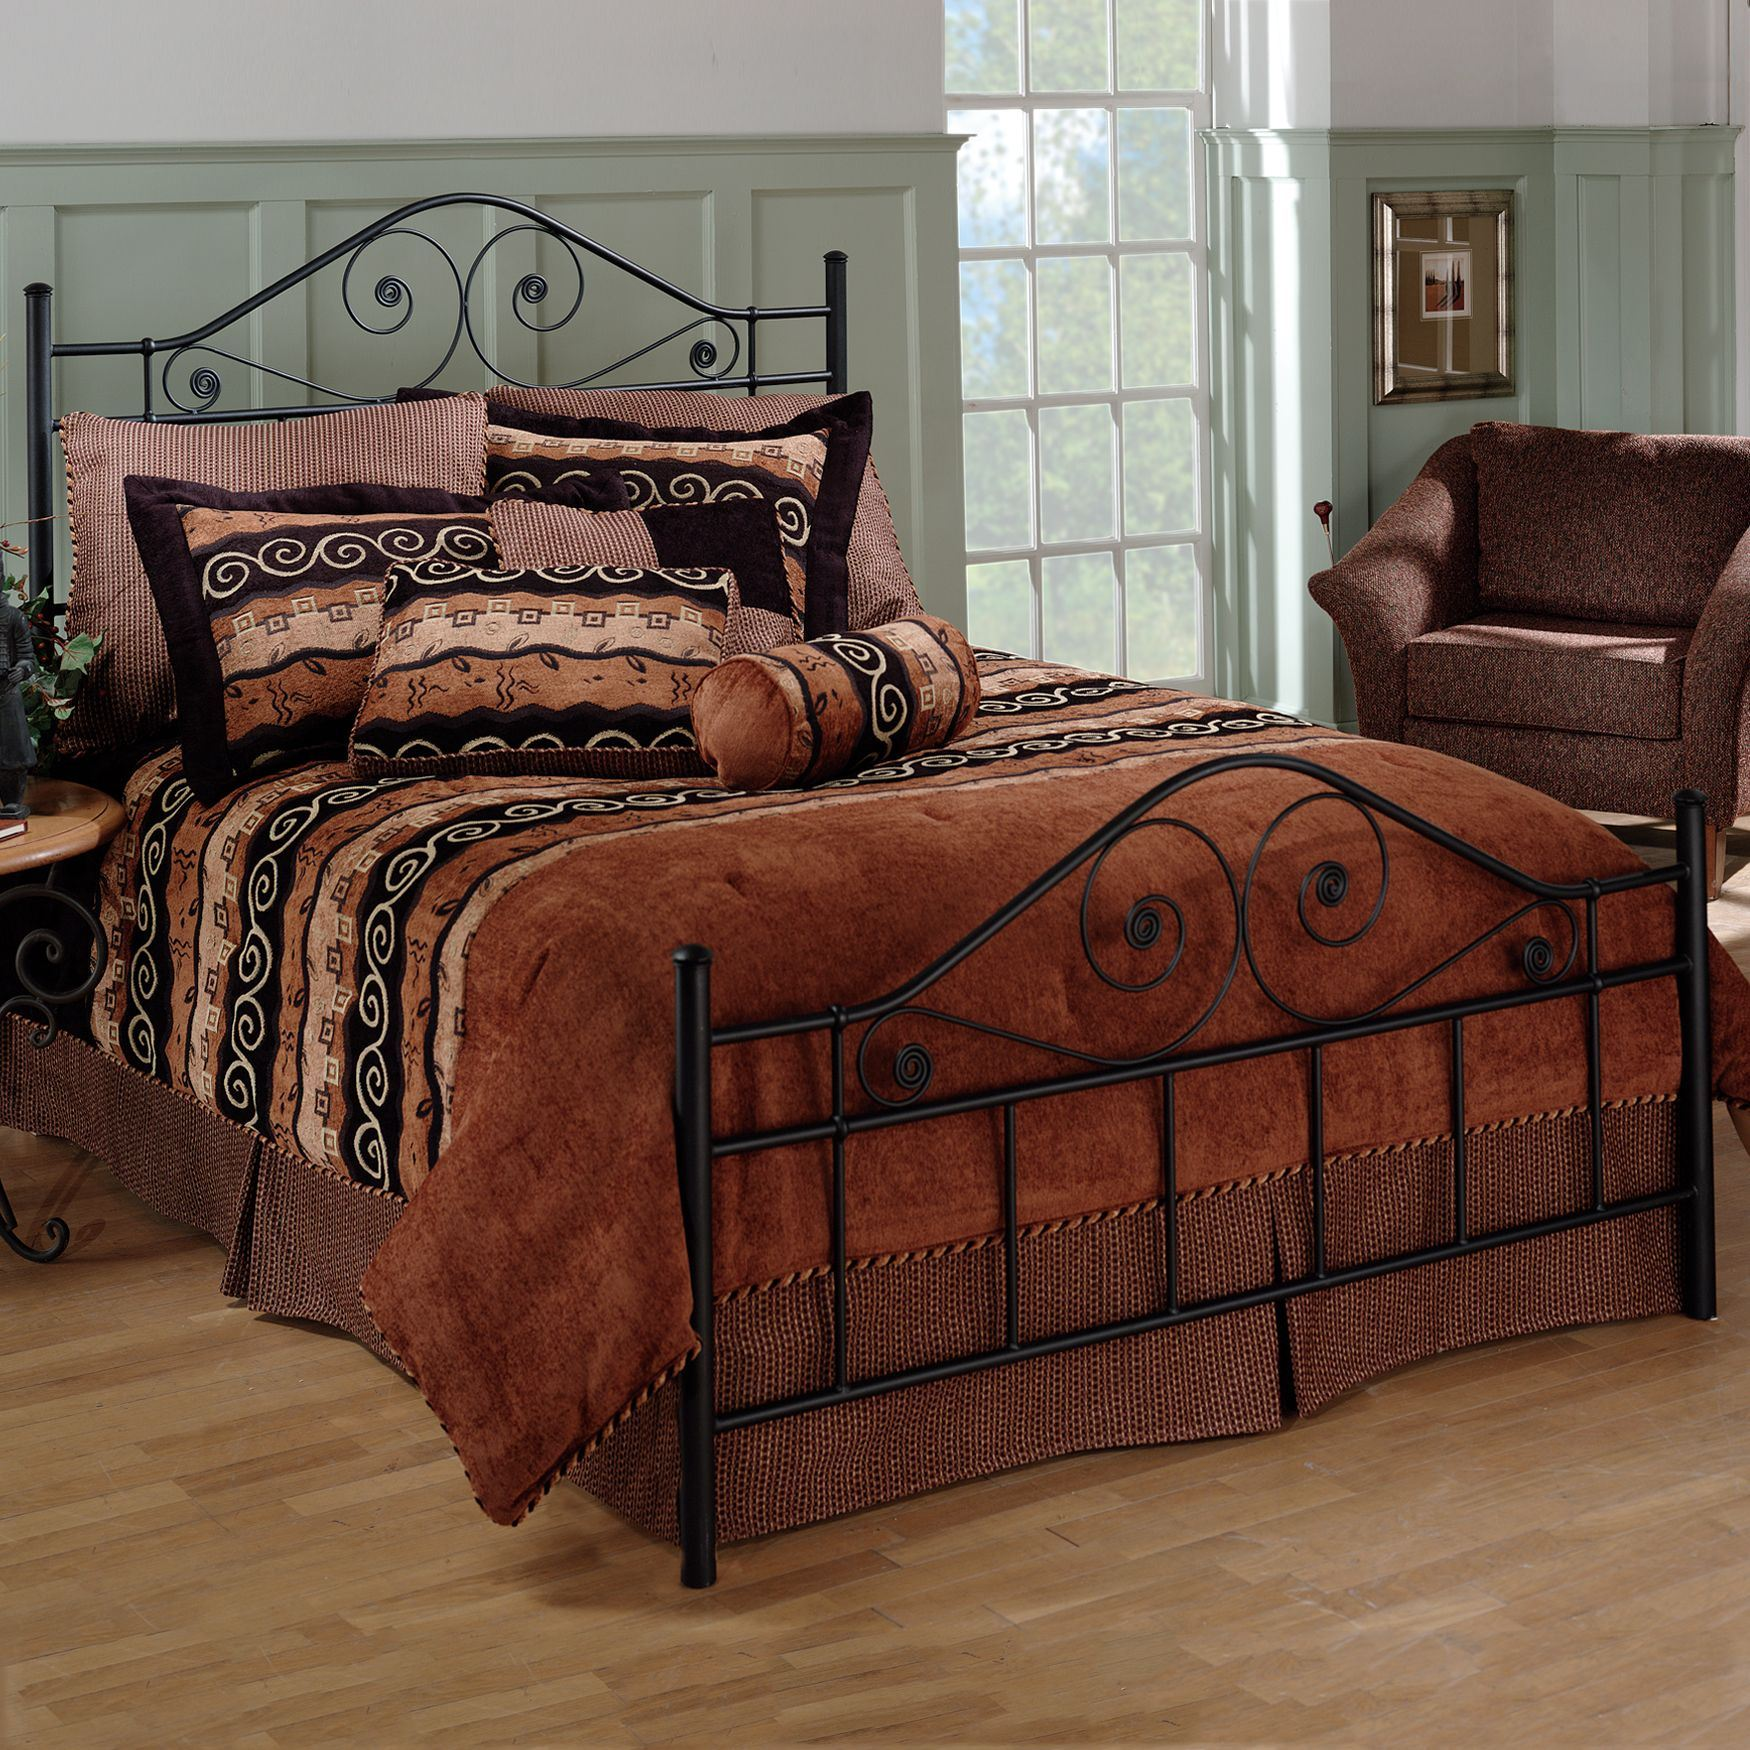 "King Bed Set with Bed Frame, 83½""Lx77""Wx51""H, BLACK"